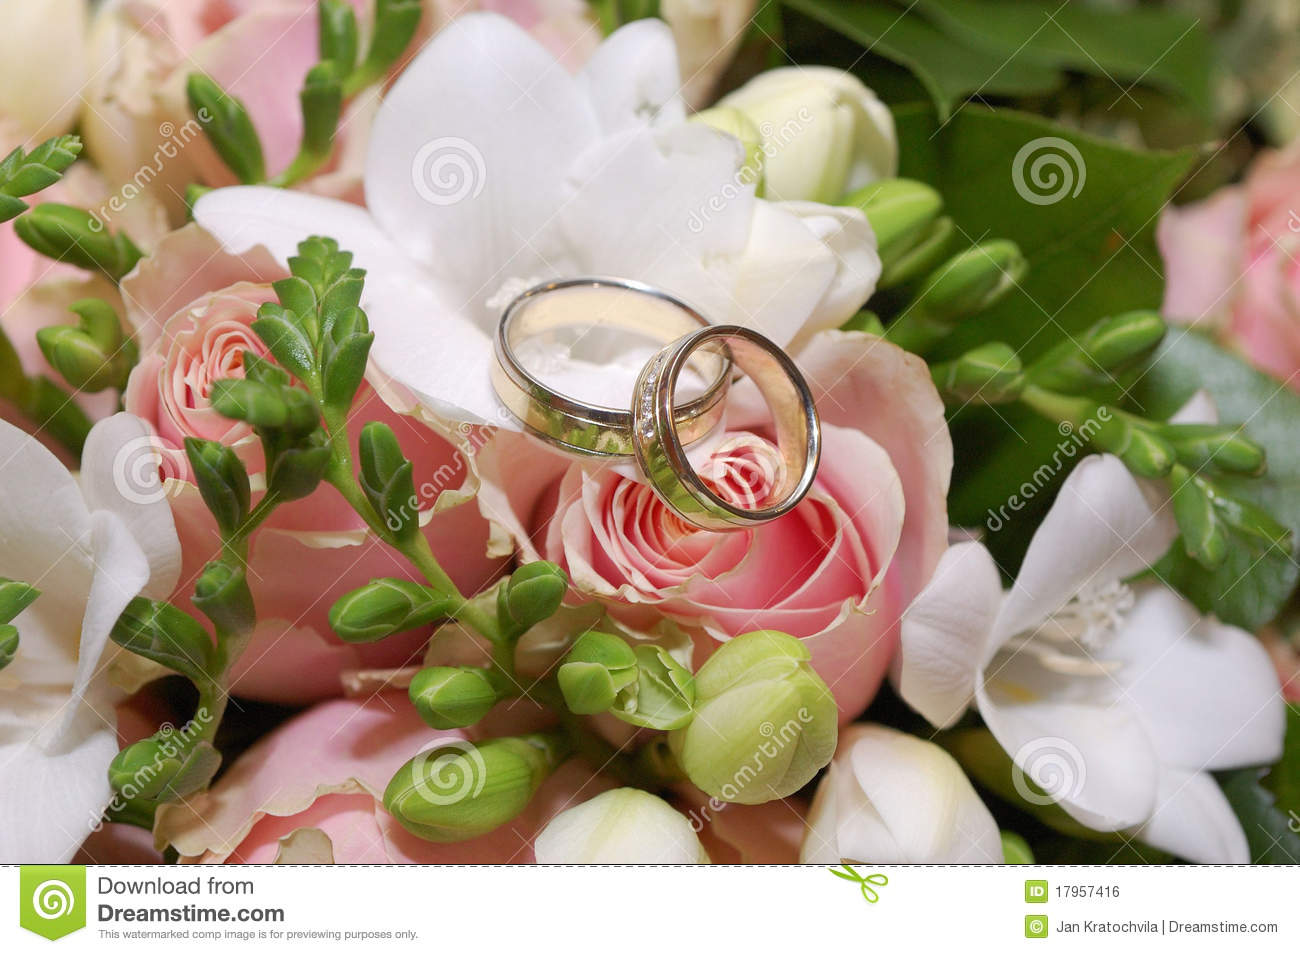 Wallpaper Primavera Hd Two Wedding Rings On Pink Rose Flower Stock Photo Image